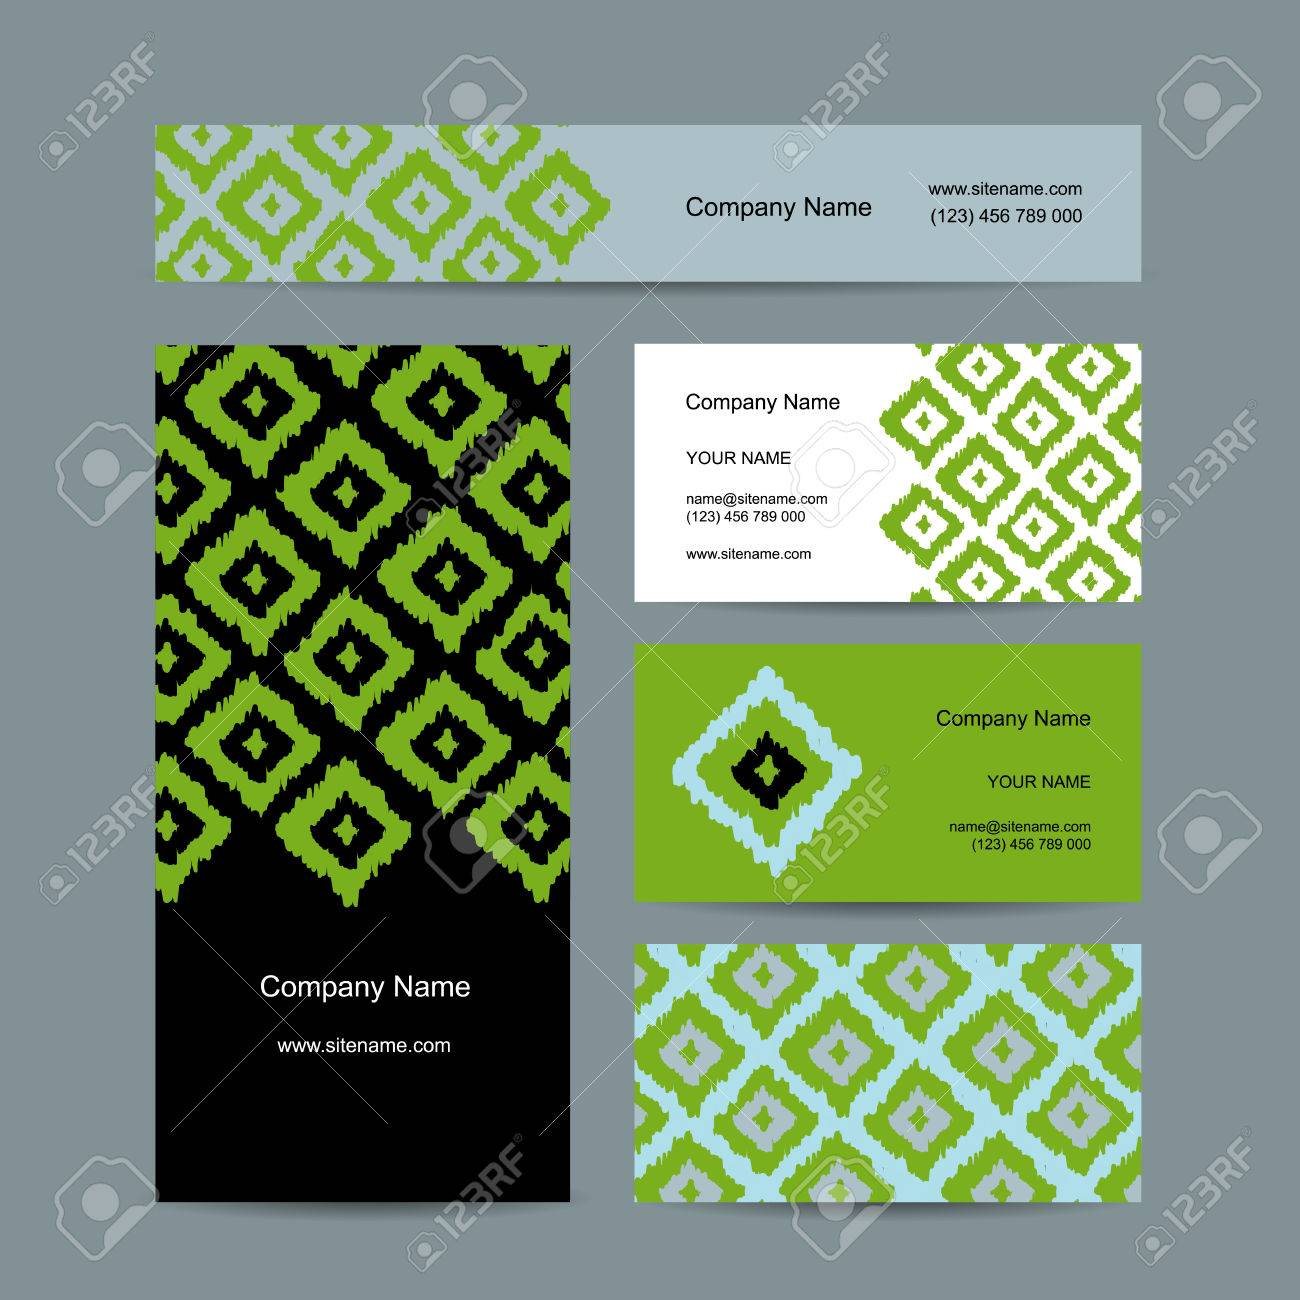 Business cards design geometric fabric pattern royalty free business cards design geometric fabric pattern stock vector 39693819 colourmoves